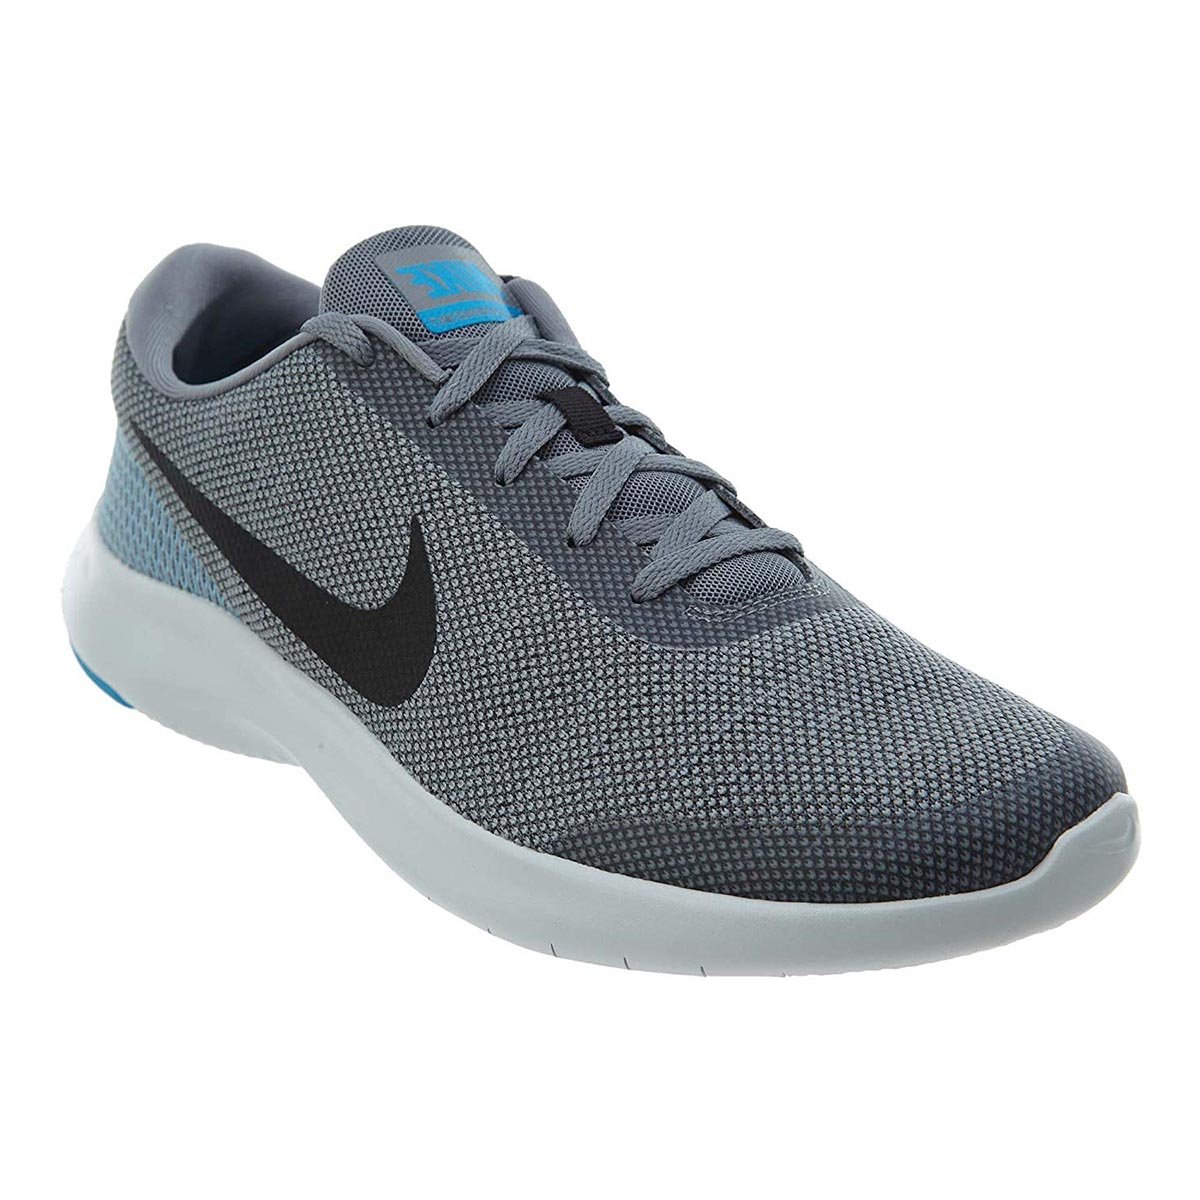 ae00c7ed1d1 At Running Nike Shoes Flex greyblack Rn7 Experience Lowest Online ftqt0